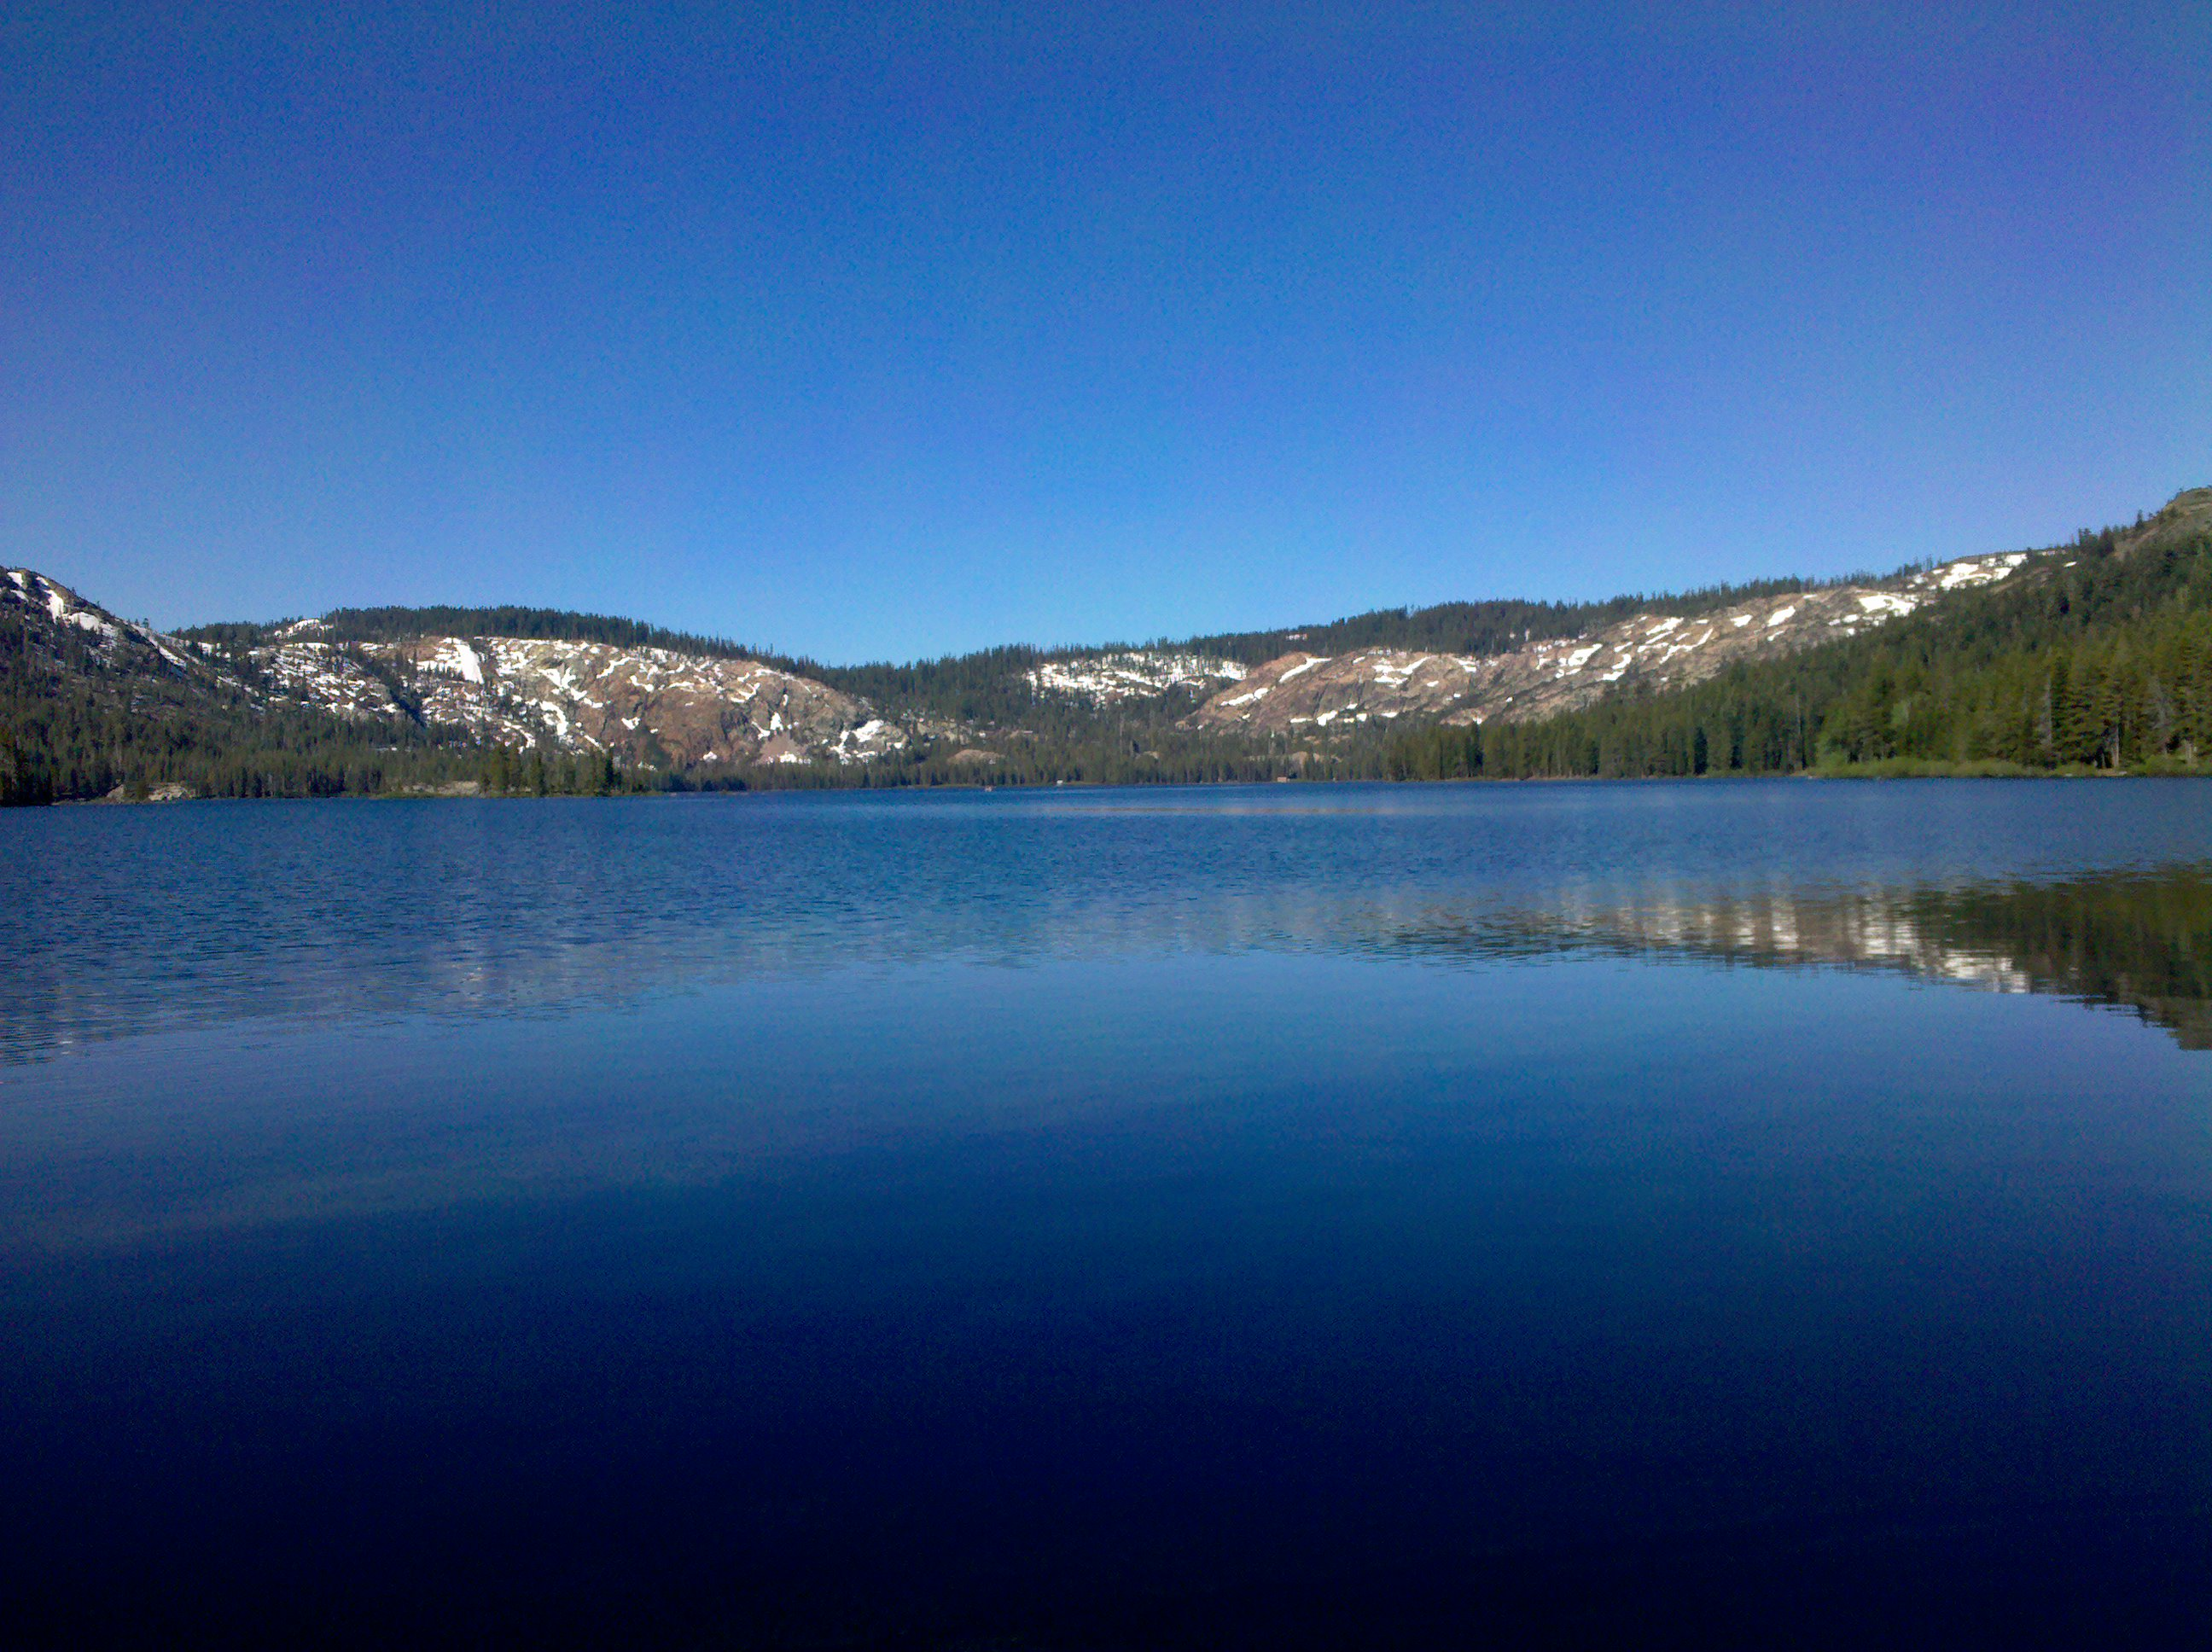 a lake along the Gold Lake Highway at the edge of the Tahoe National Forest